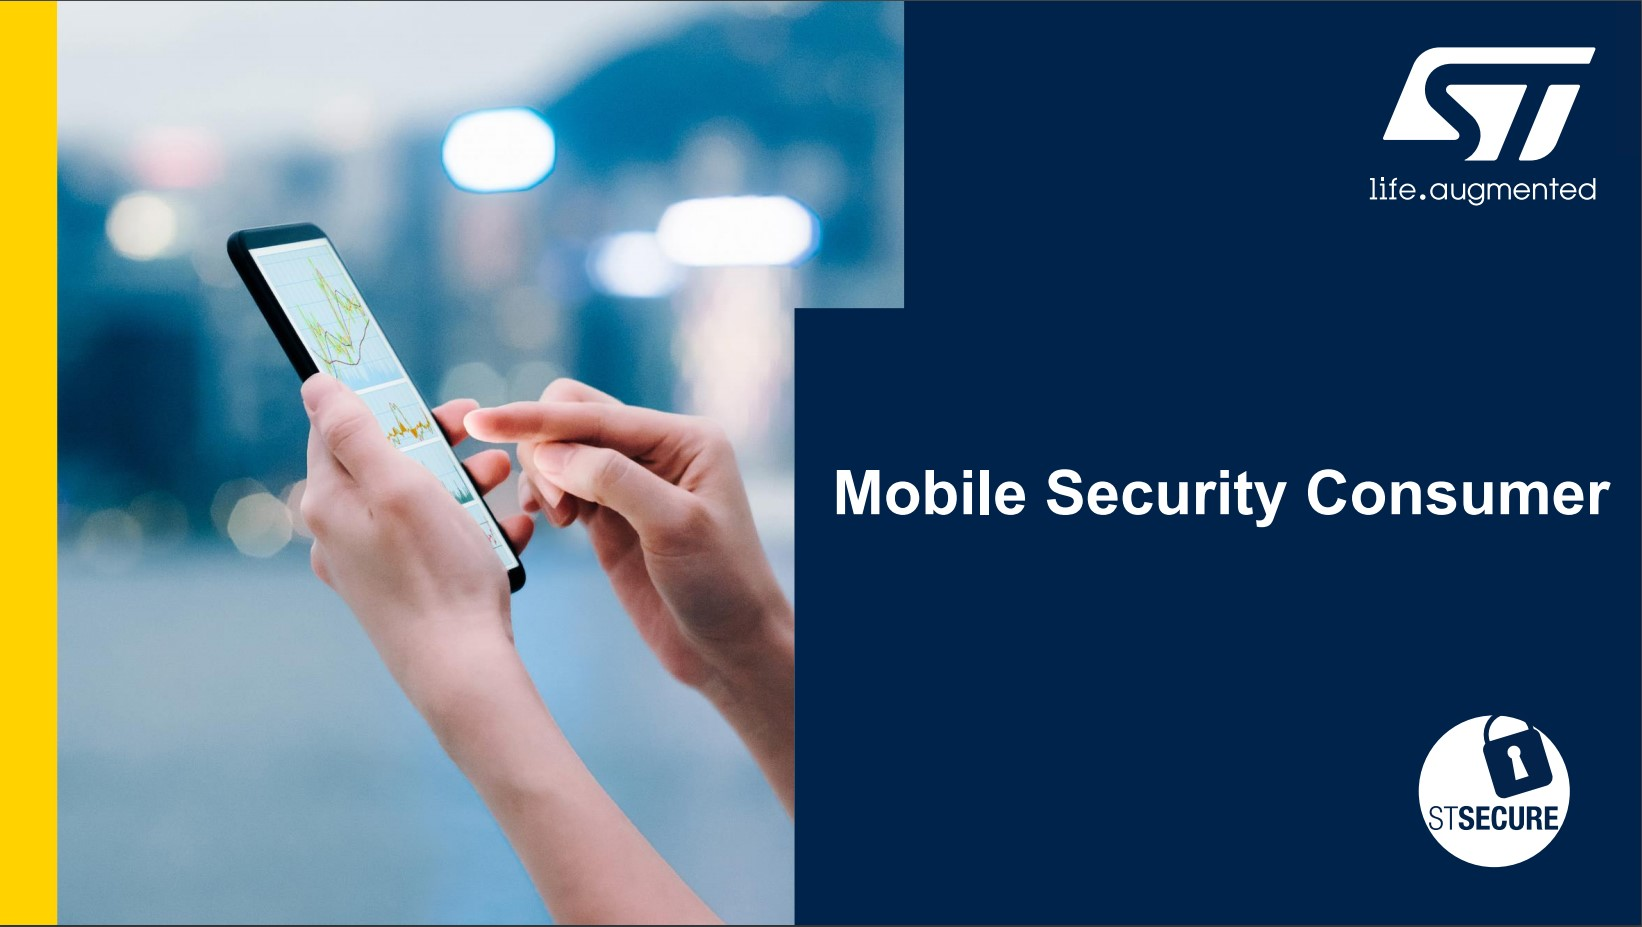 Mobile security consumer solutions